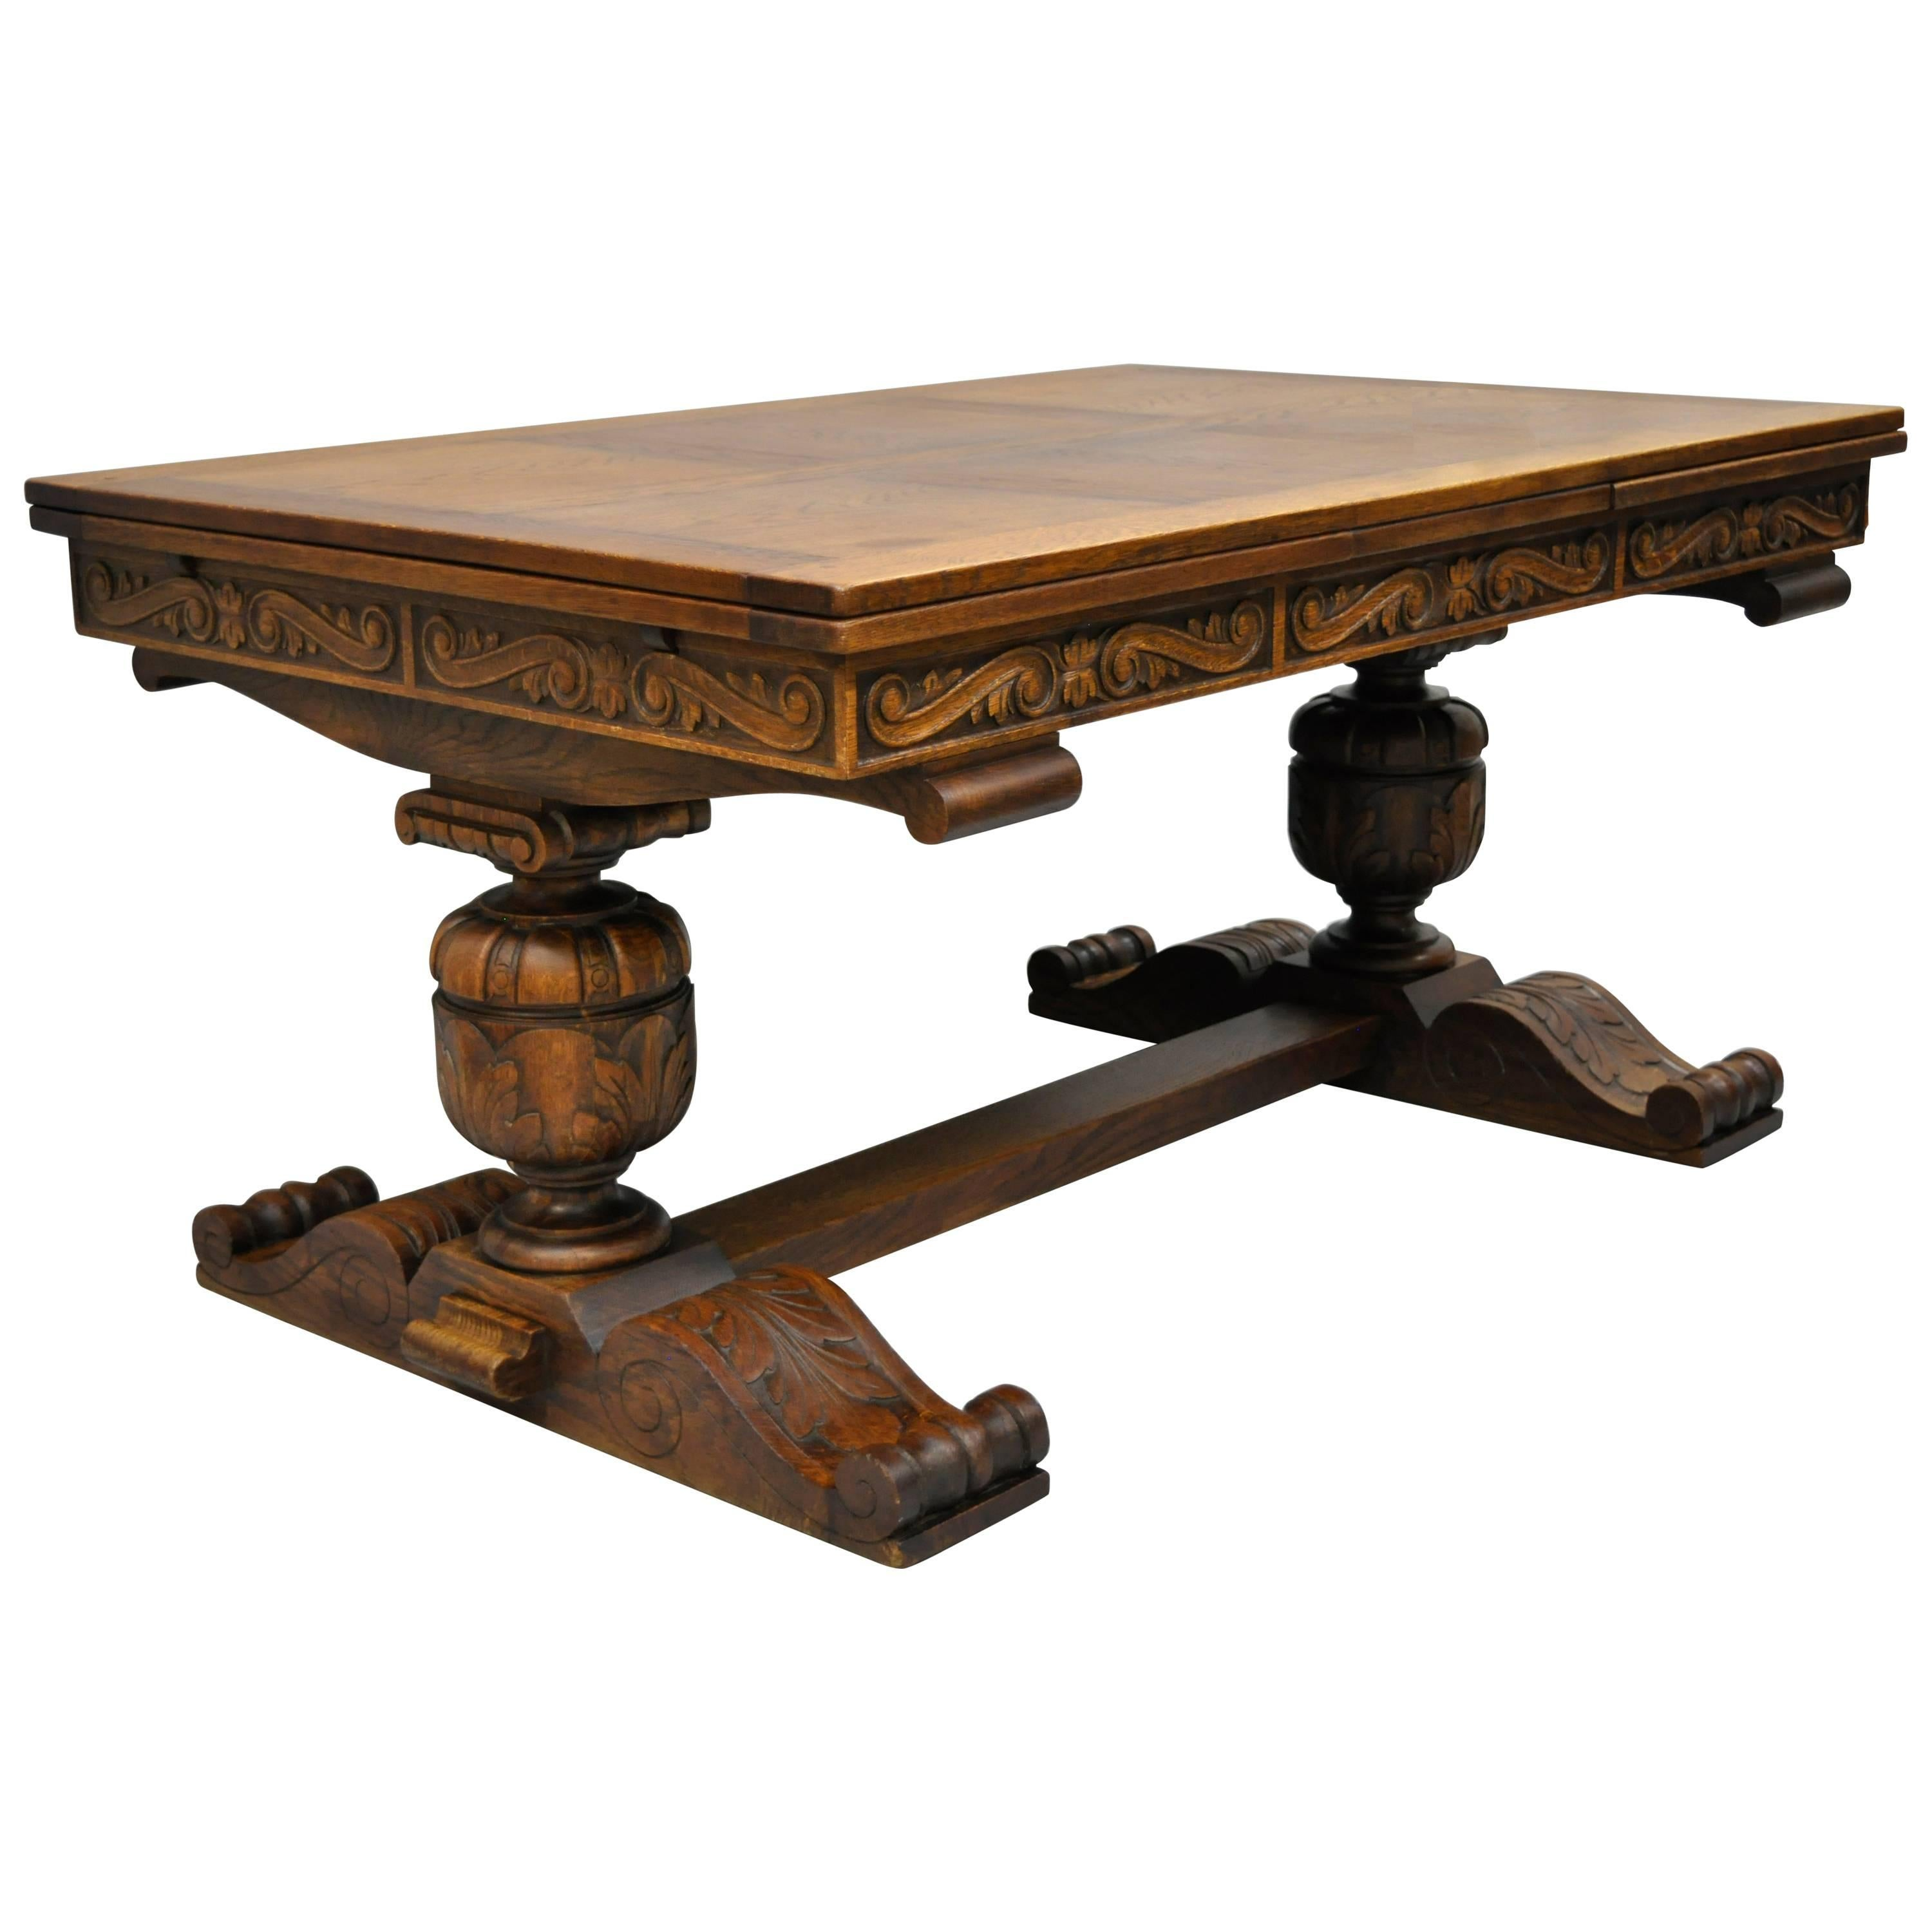 Carved Oak Wood Renaissance Revival Refectory Extension Trestle Dining Table